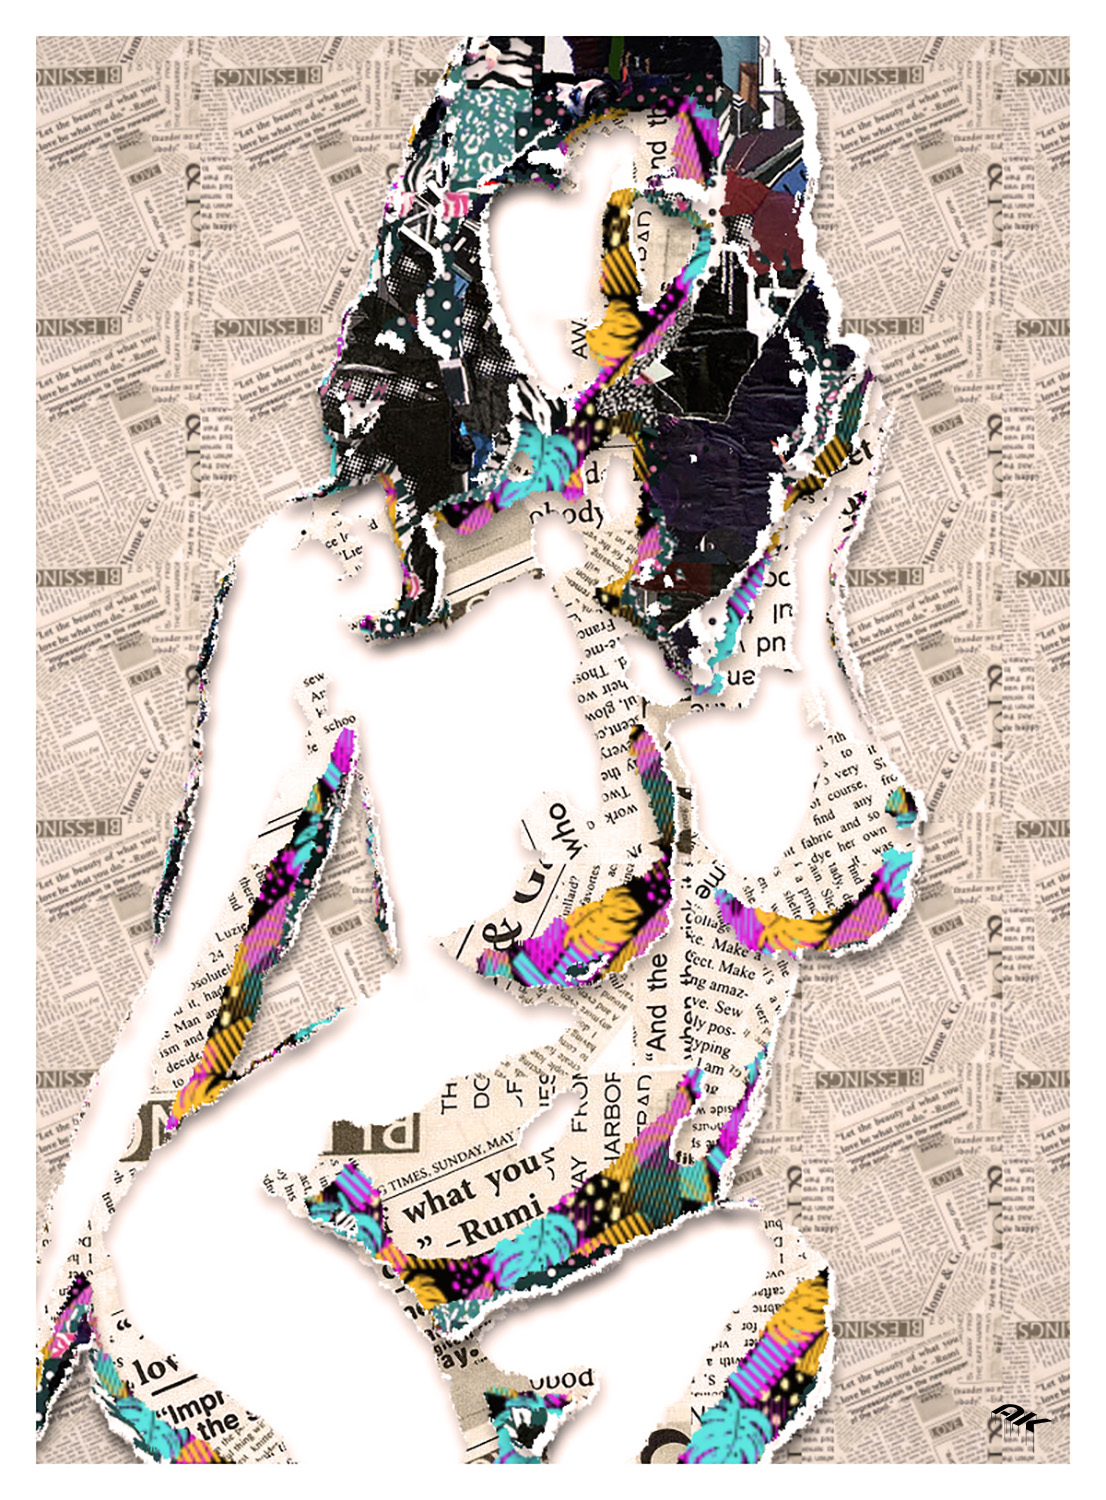 collage-portraits-7-copyright-andrew-knutt